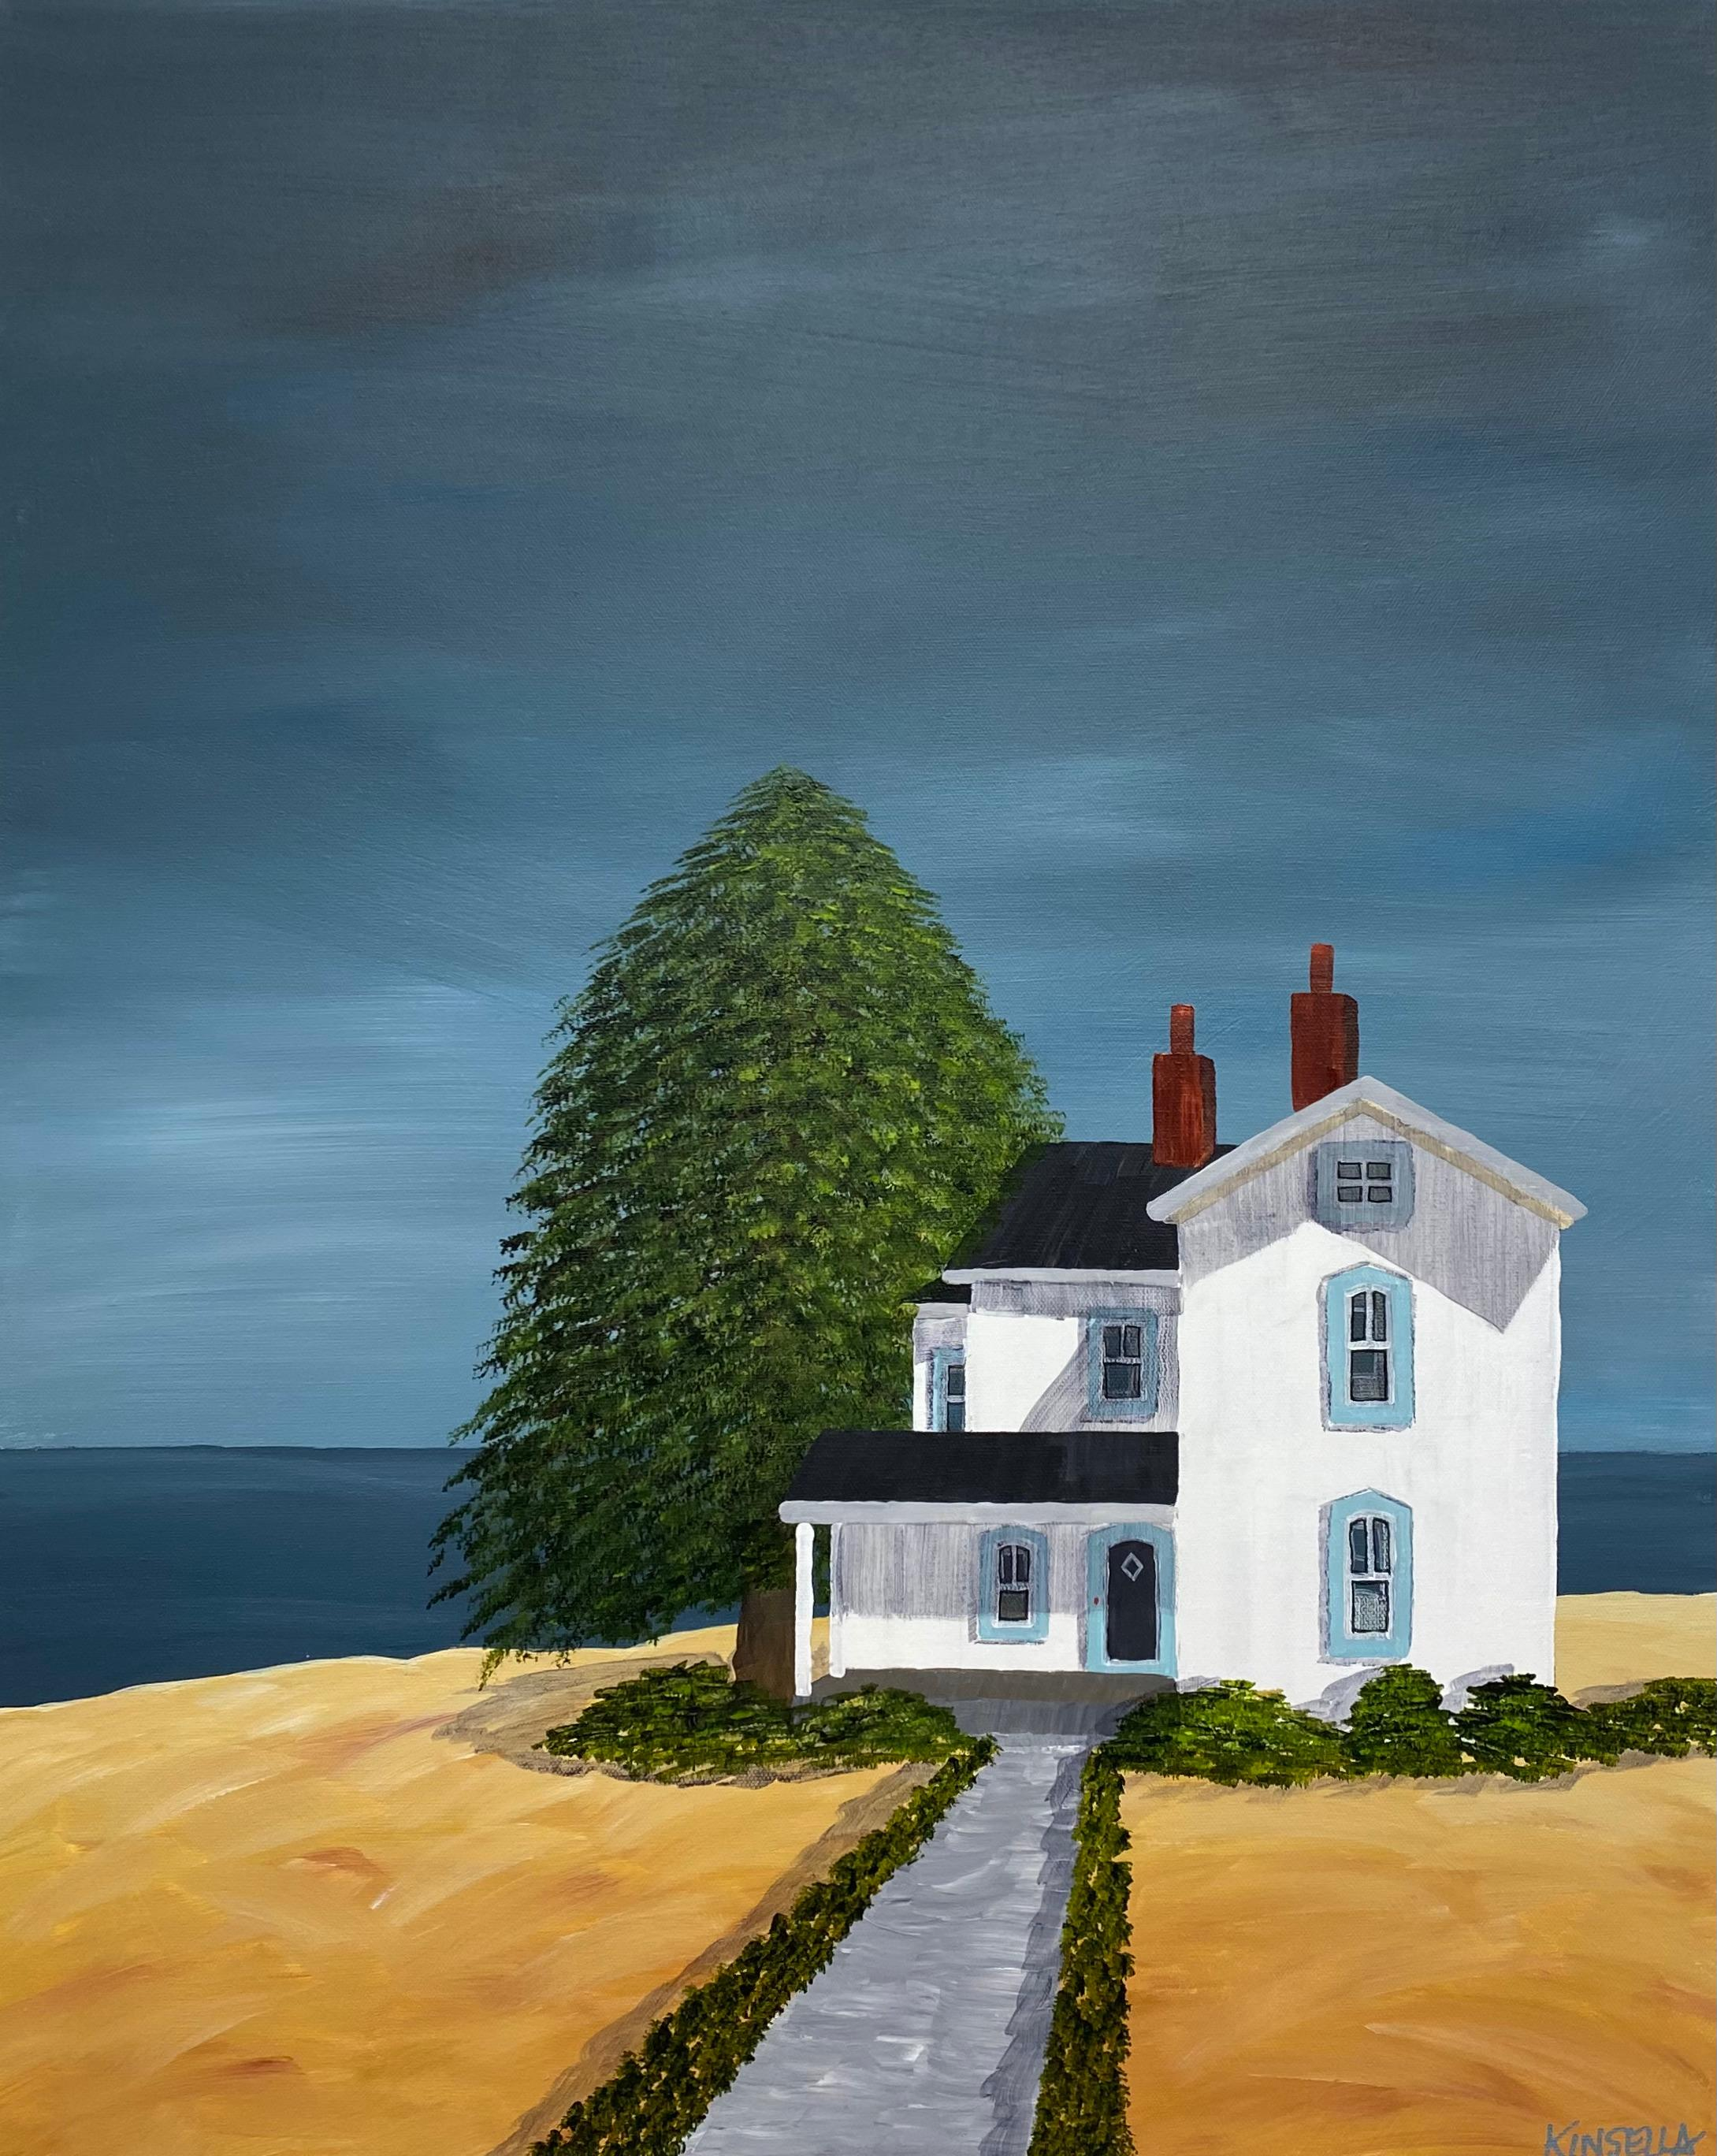 Afternoon at the Shore Susan Kinsella, Landscape Acrylic on Canvas Painting